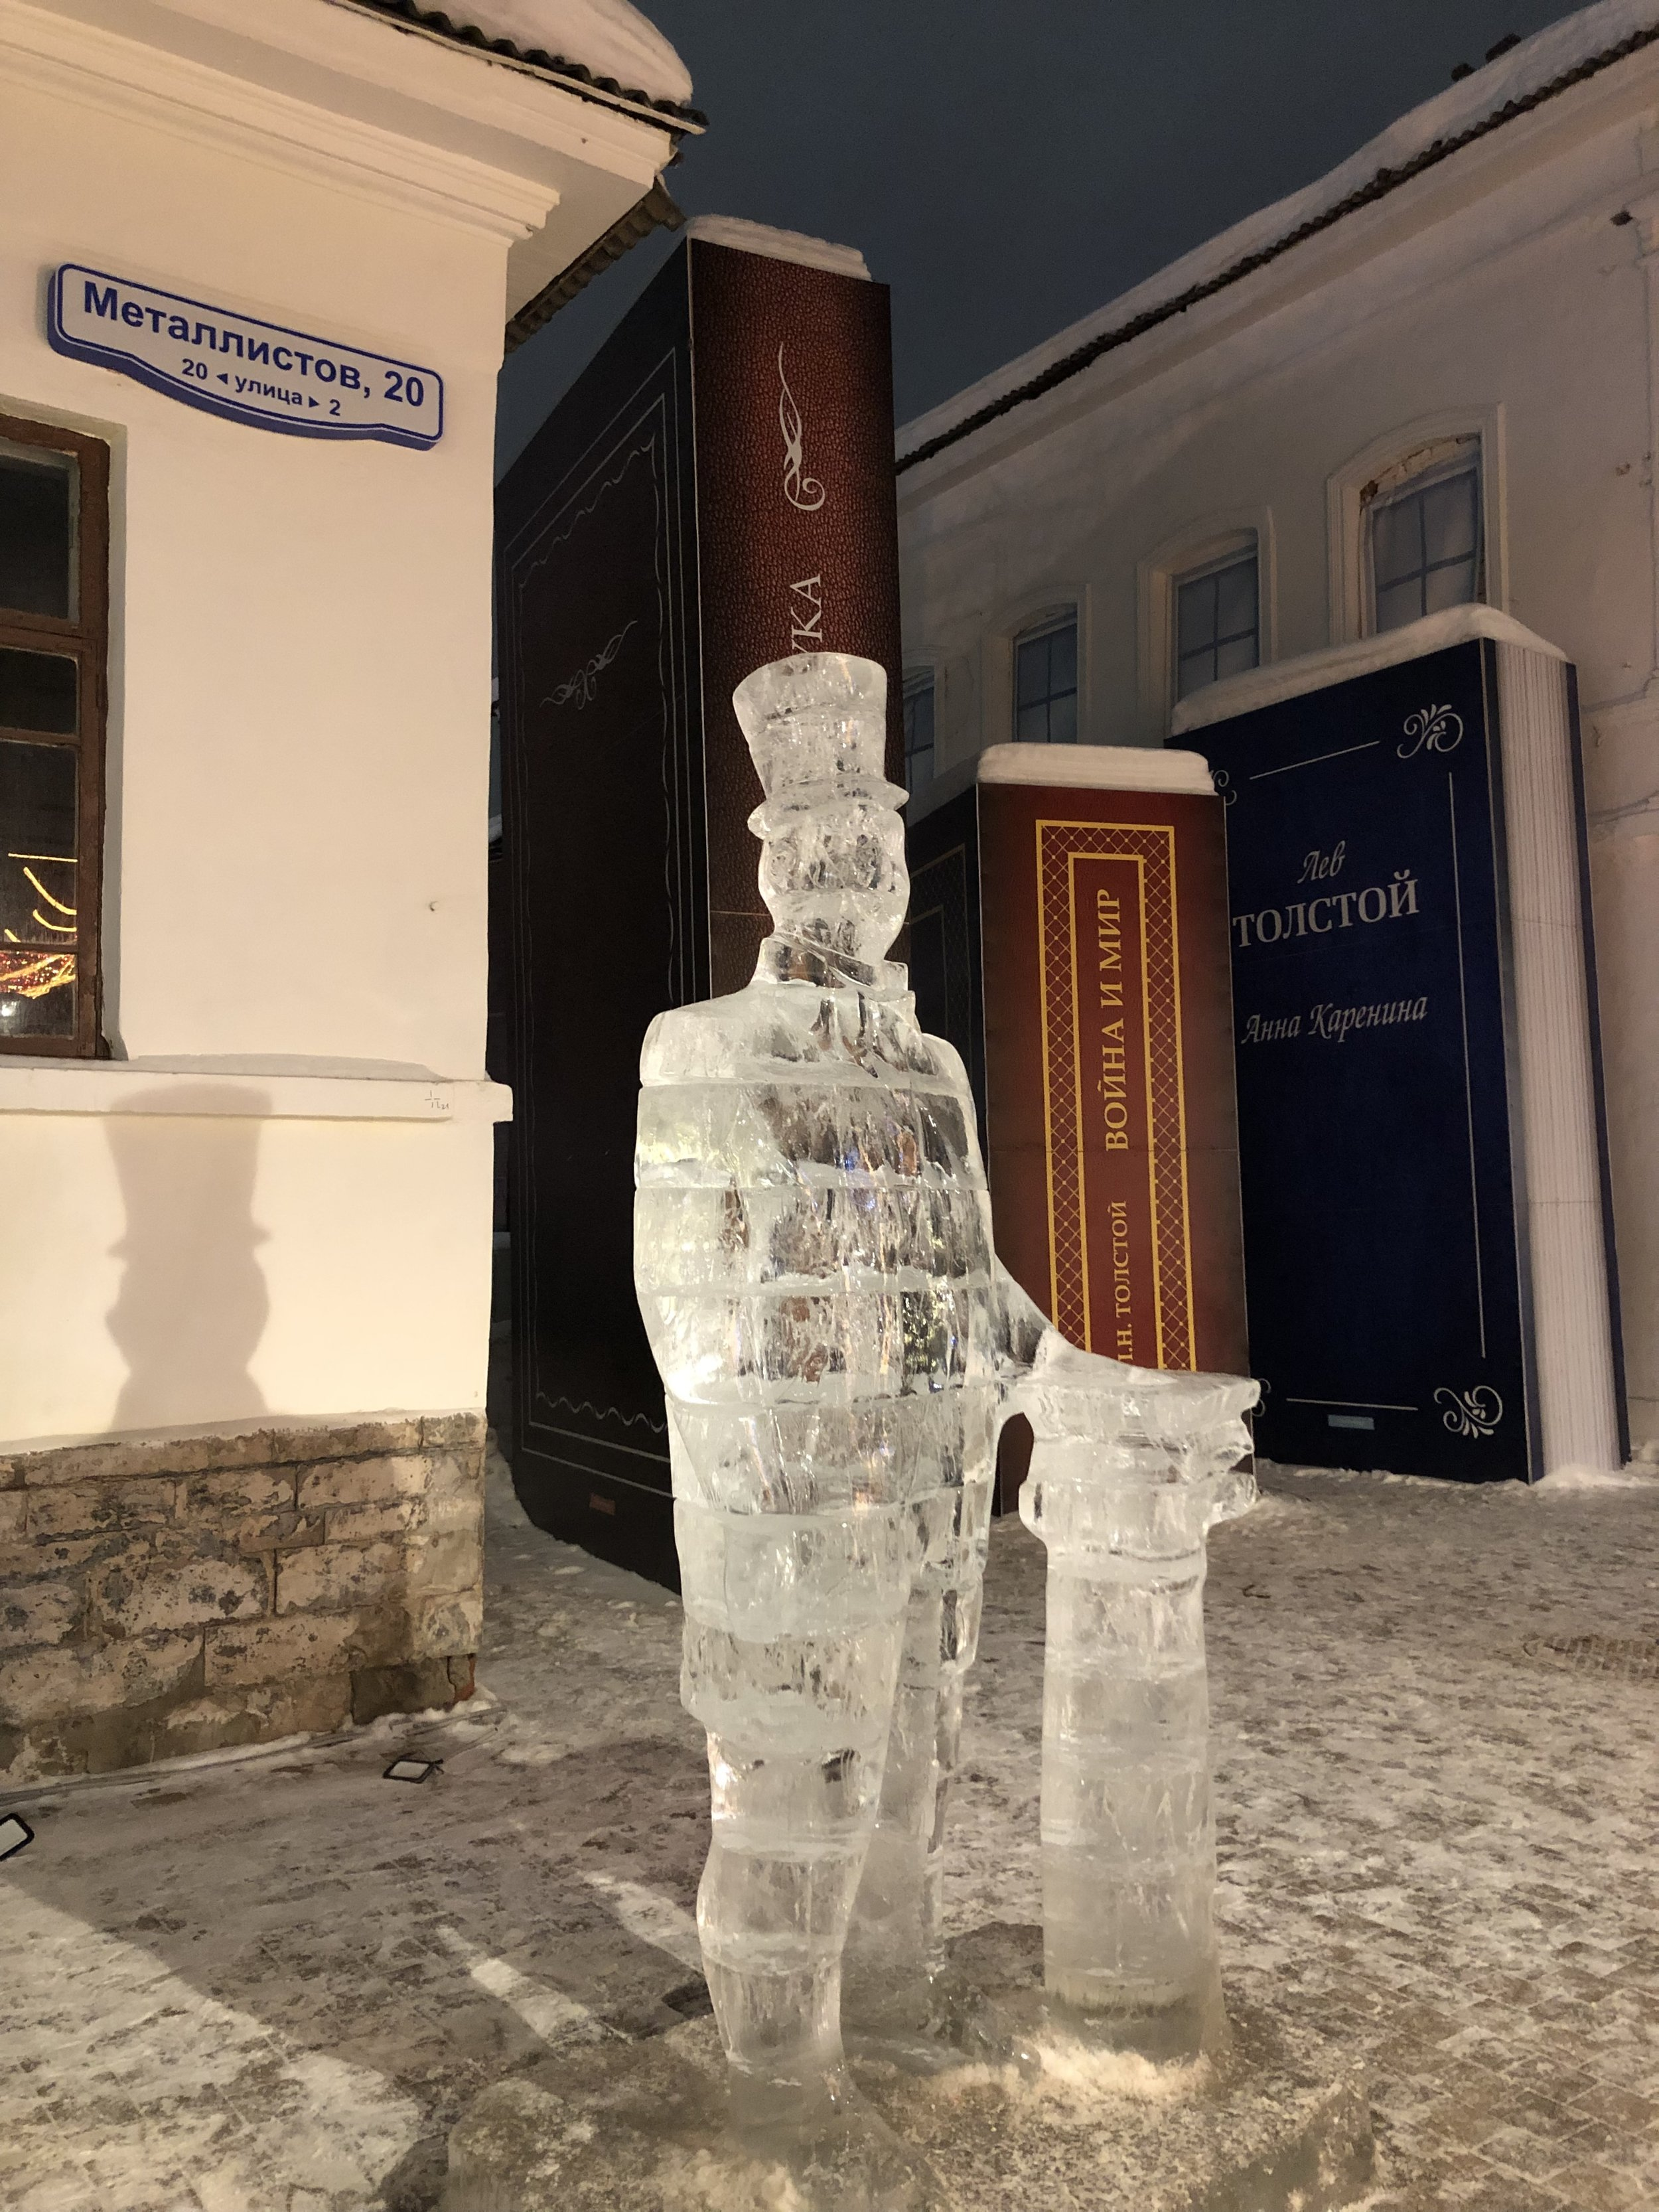 Ice sculpture, Metallistov street, Tula